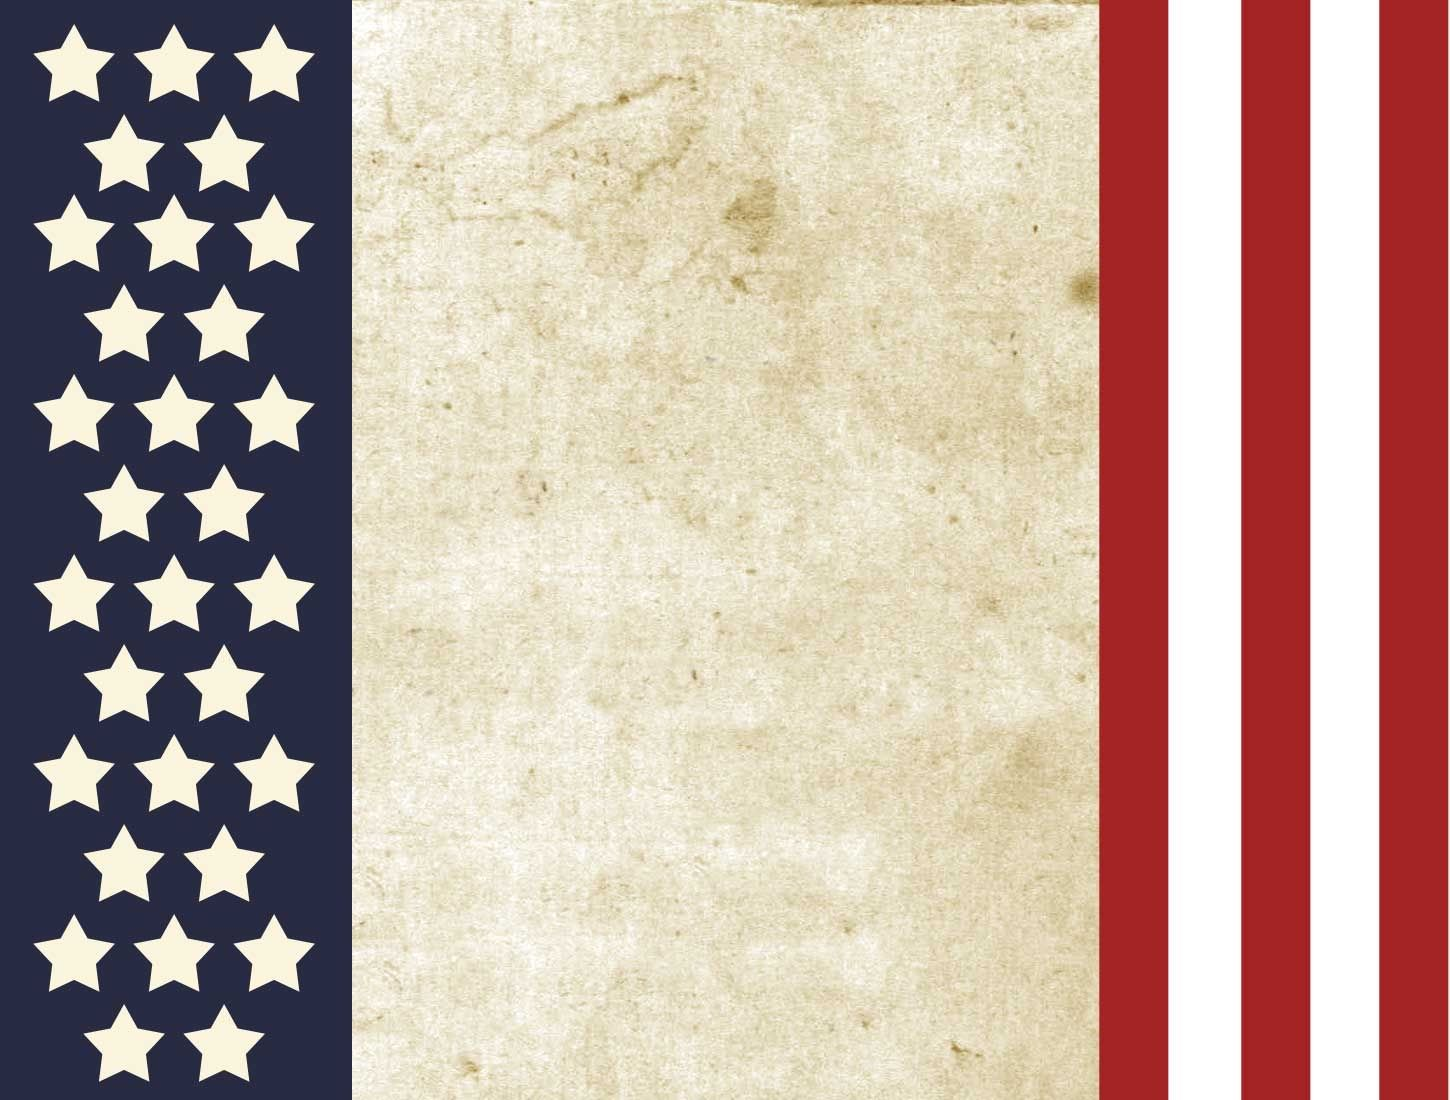 Free Patriotic Backgrounds Just download the image above